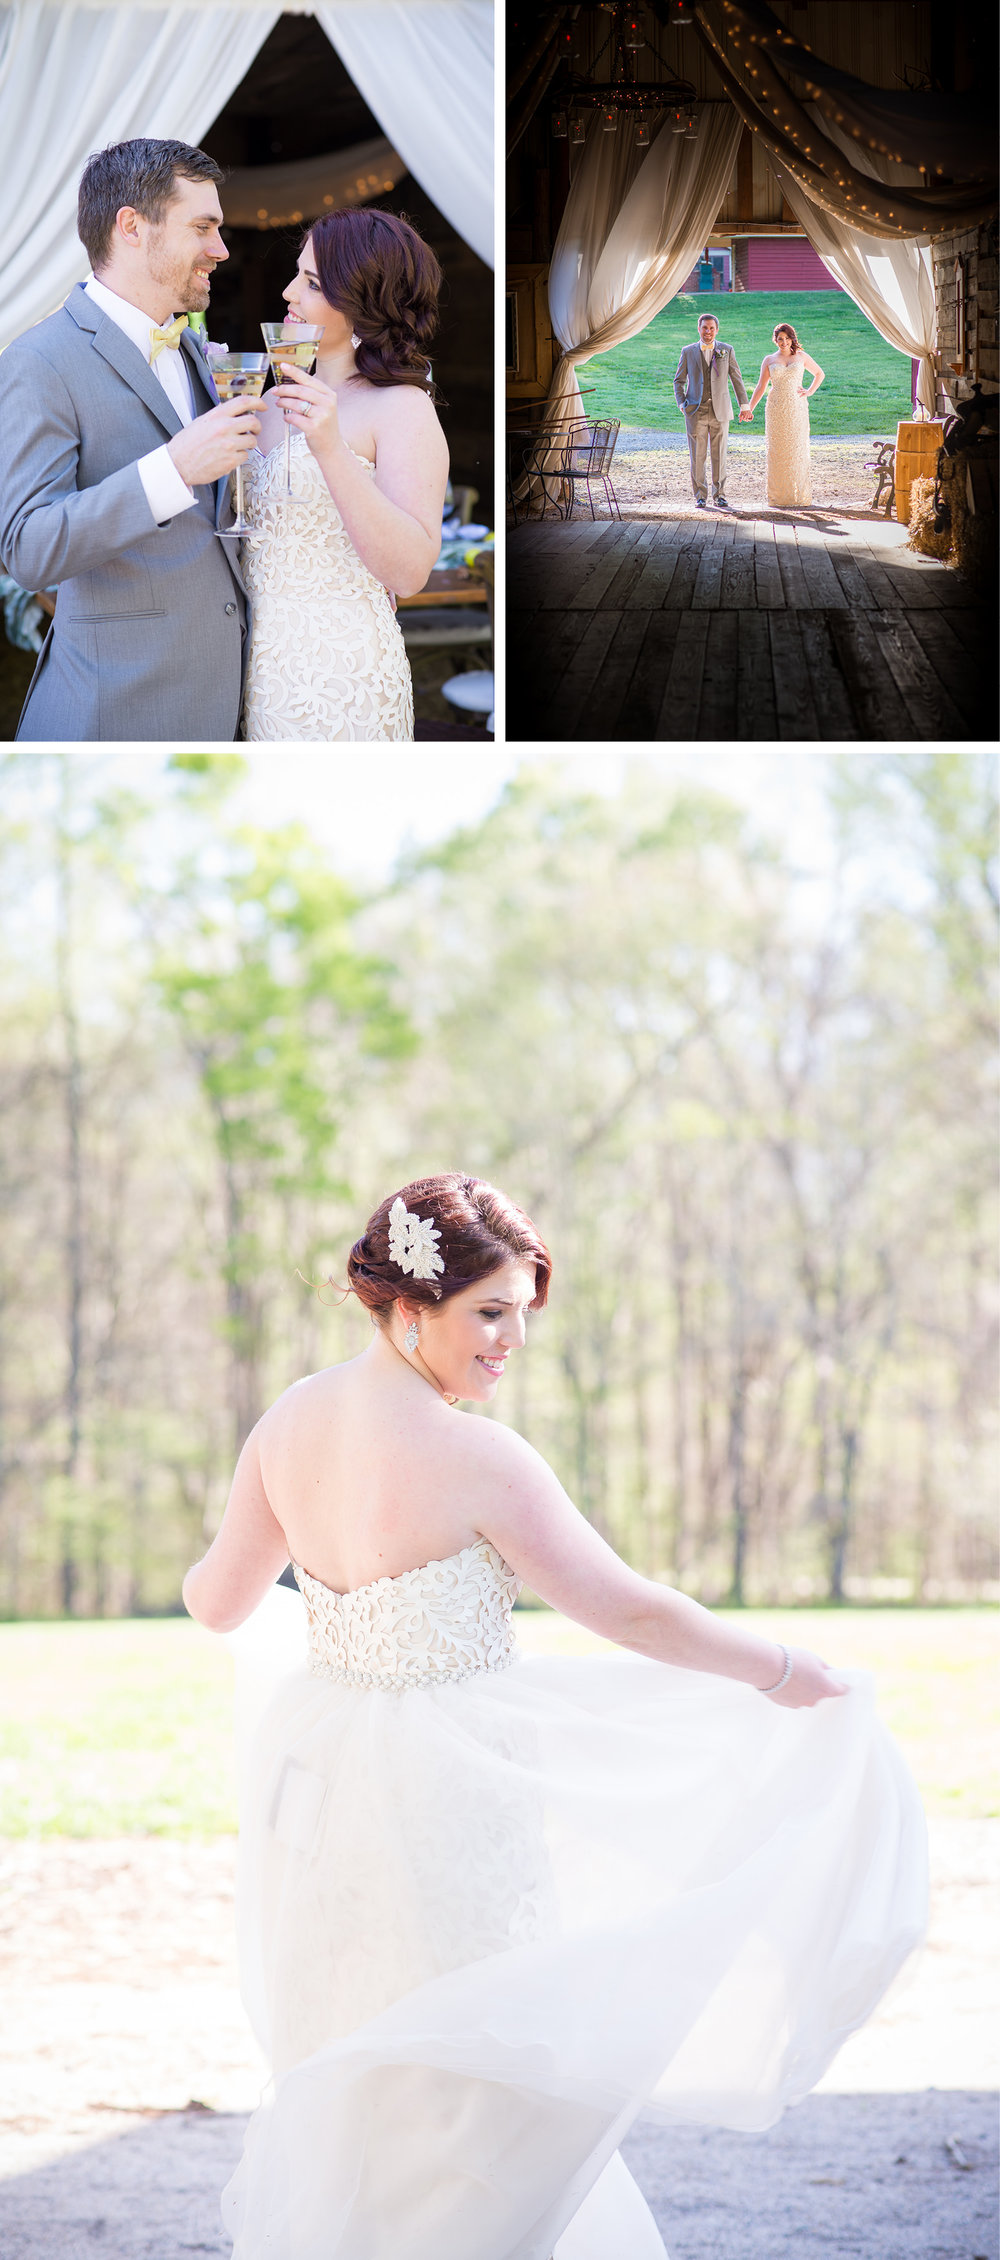 Charlotte-Wedding-Stationer-Lemon-and-Lavender-Styled-Shoot-Magnificent-Moments-Cami-Ann.jpg